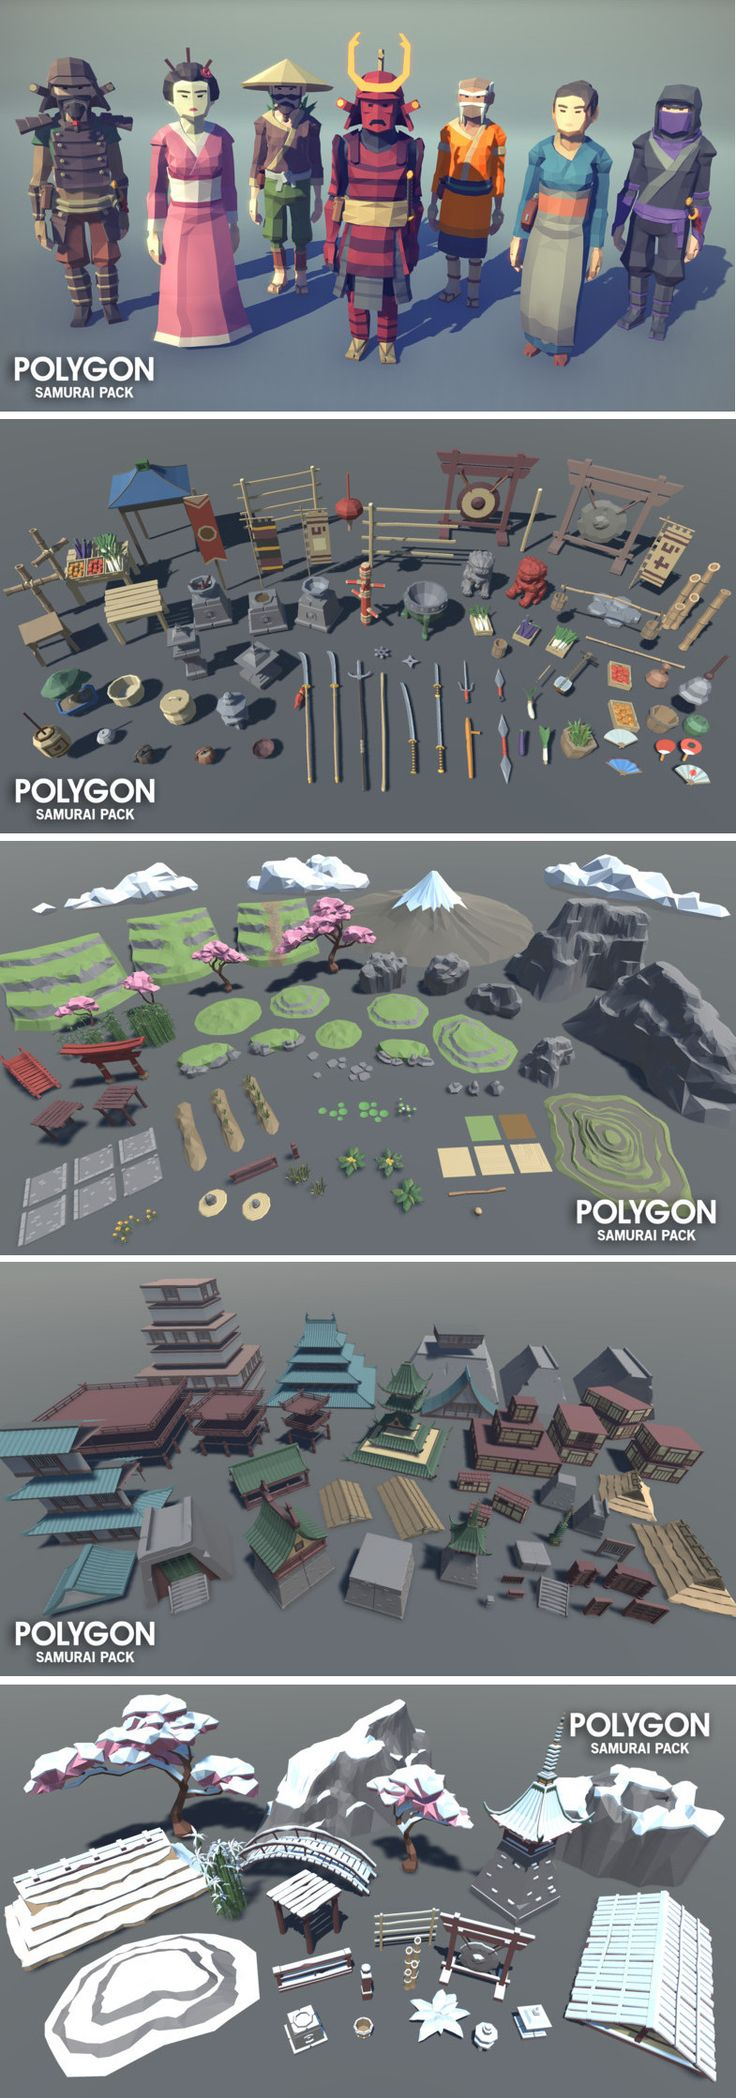 POLYGON - Samurai Pack A low poly asset pack of characters, buildings, props, items and environment assets to create a fantasy based polygonal style game.- Geisha - Samurai Grunt - Samurai Warrior - Sensei - Ninja - Village Man - Village Woman Unity 3D Asset Low Poly